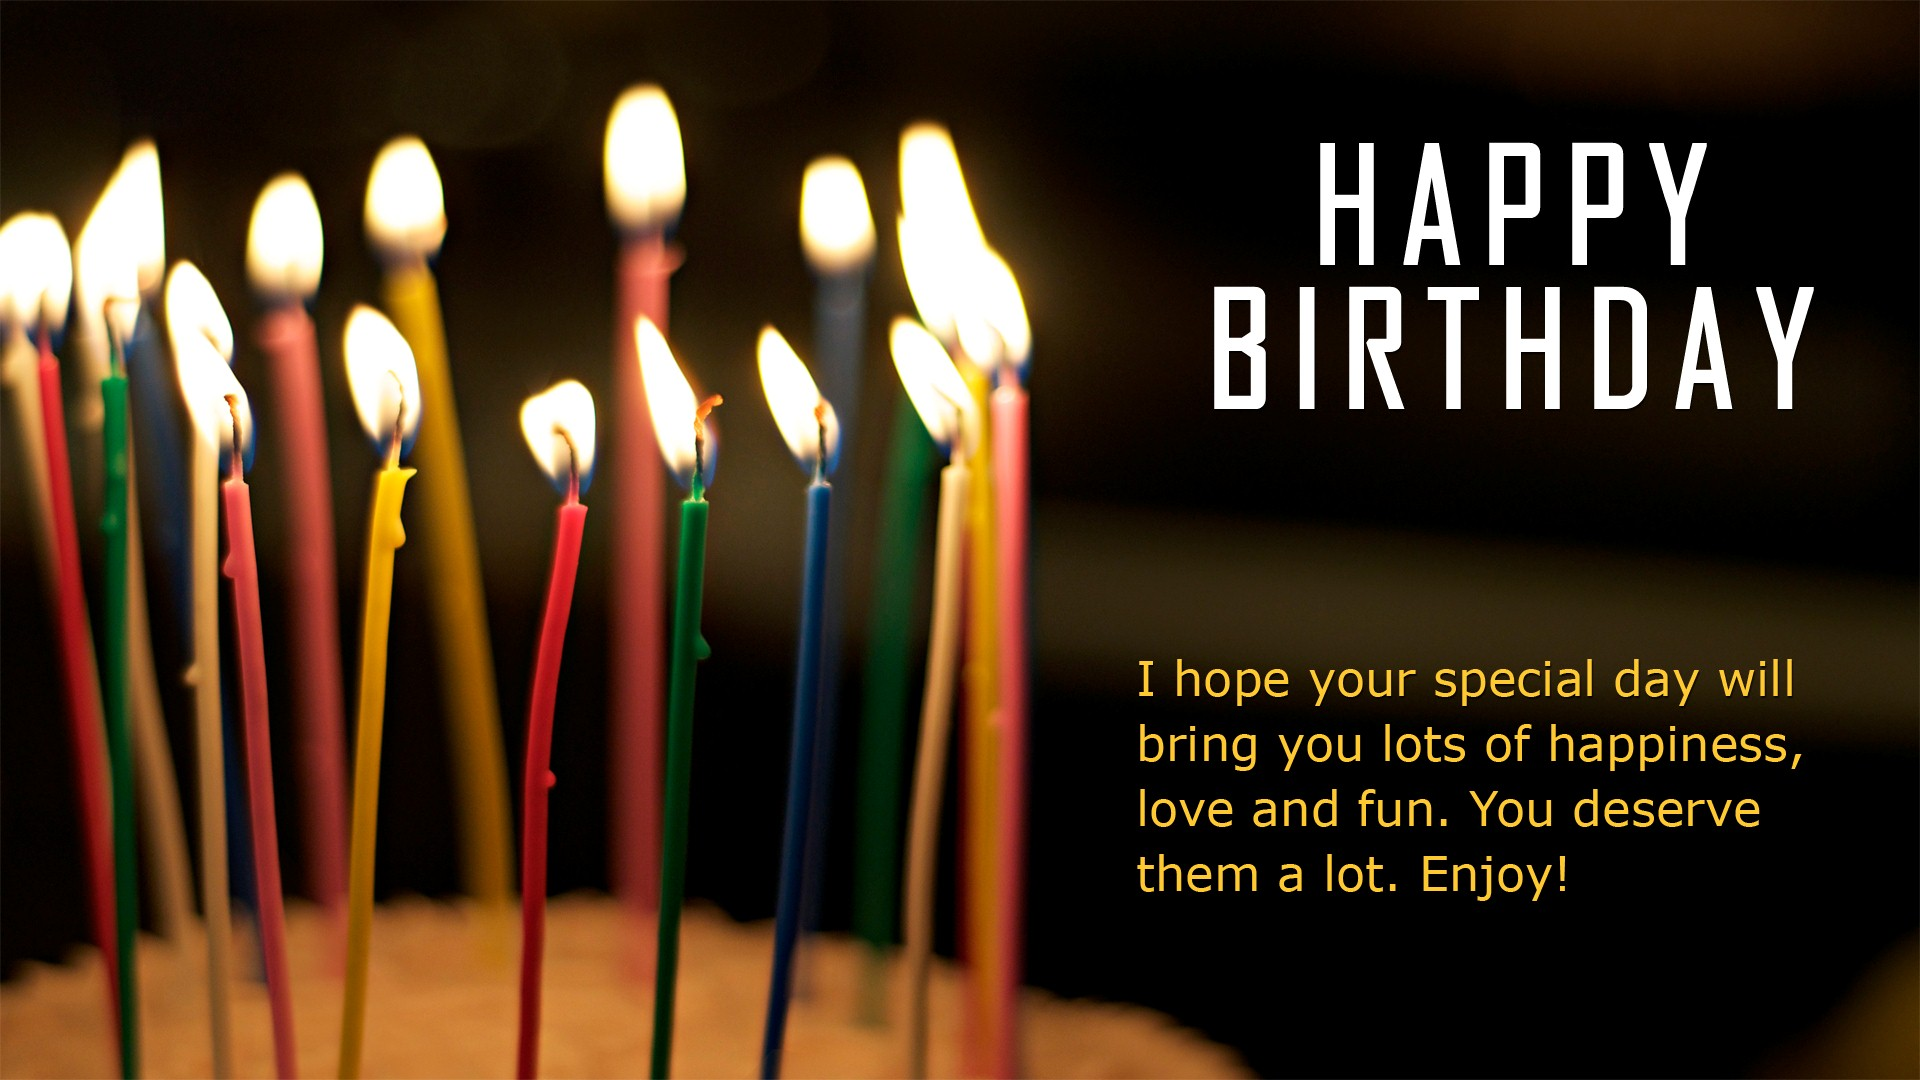 birthday wishes pics hd ; Happy_Birthday_Greeting_and_Wishes_HD_desktop_background